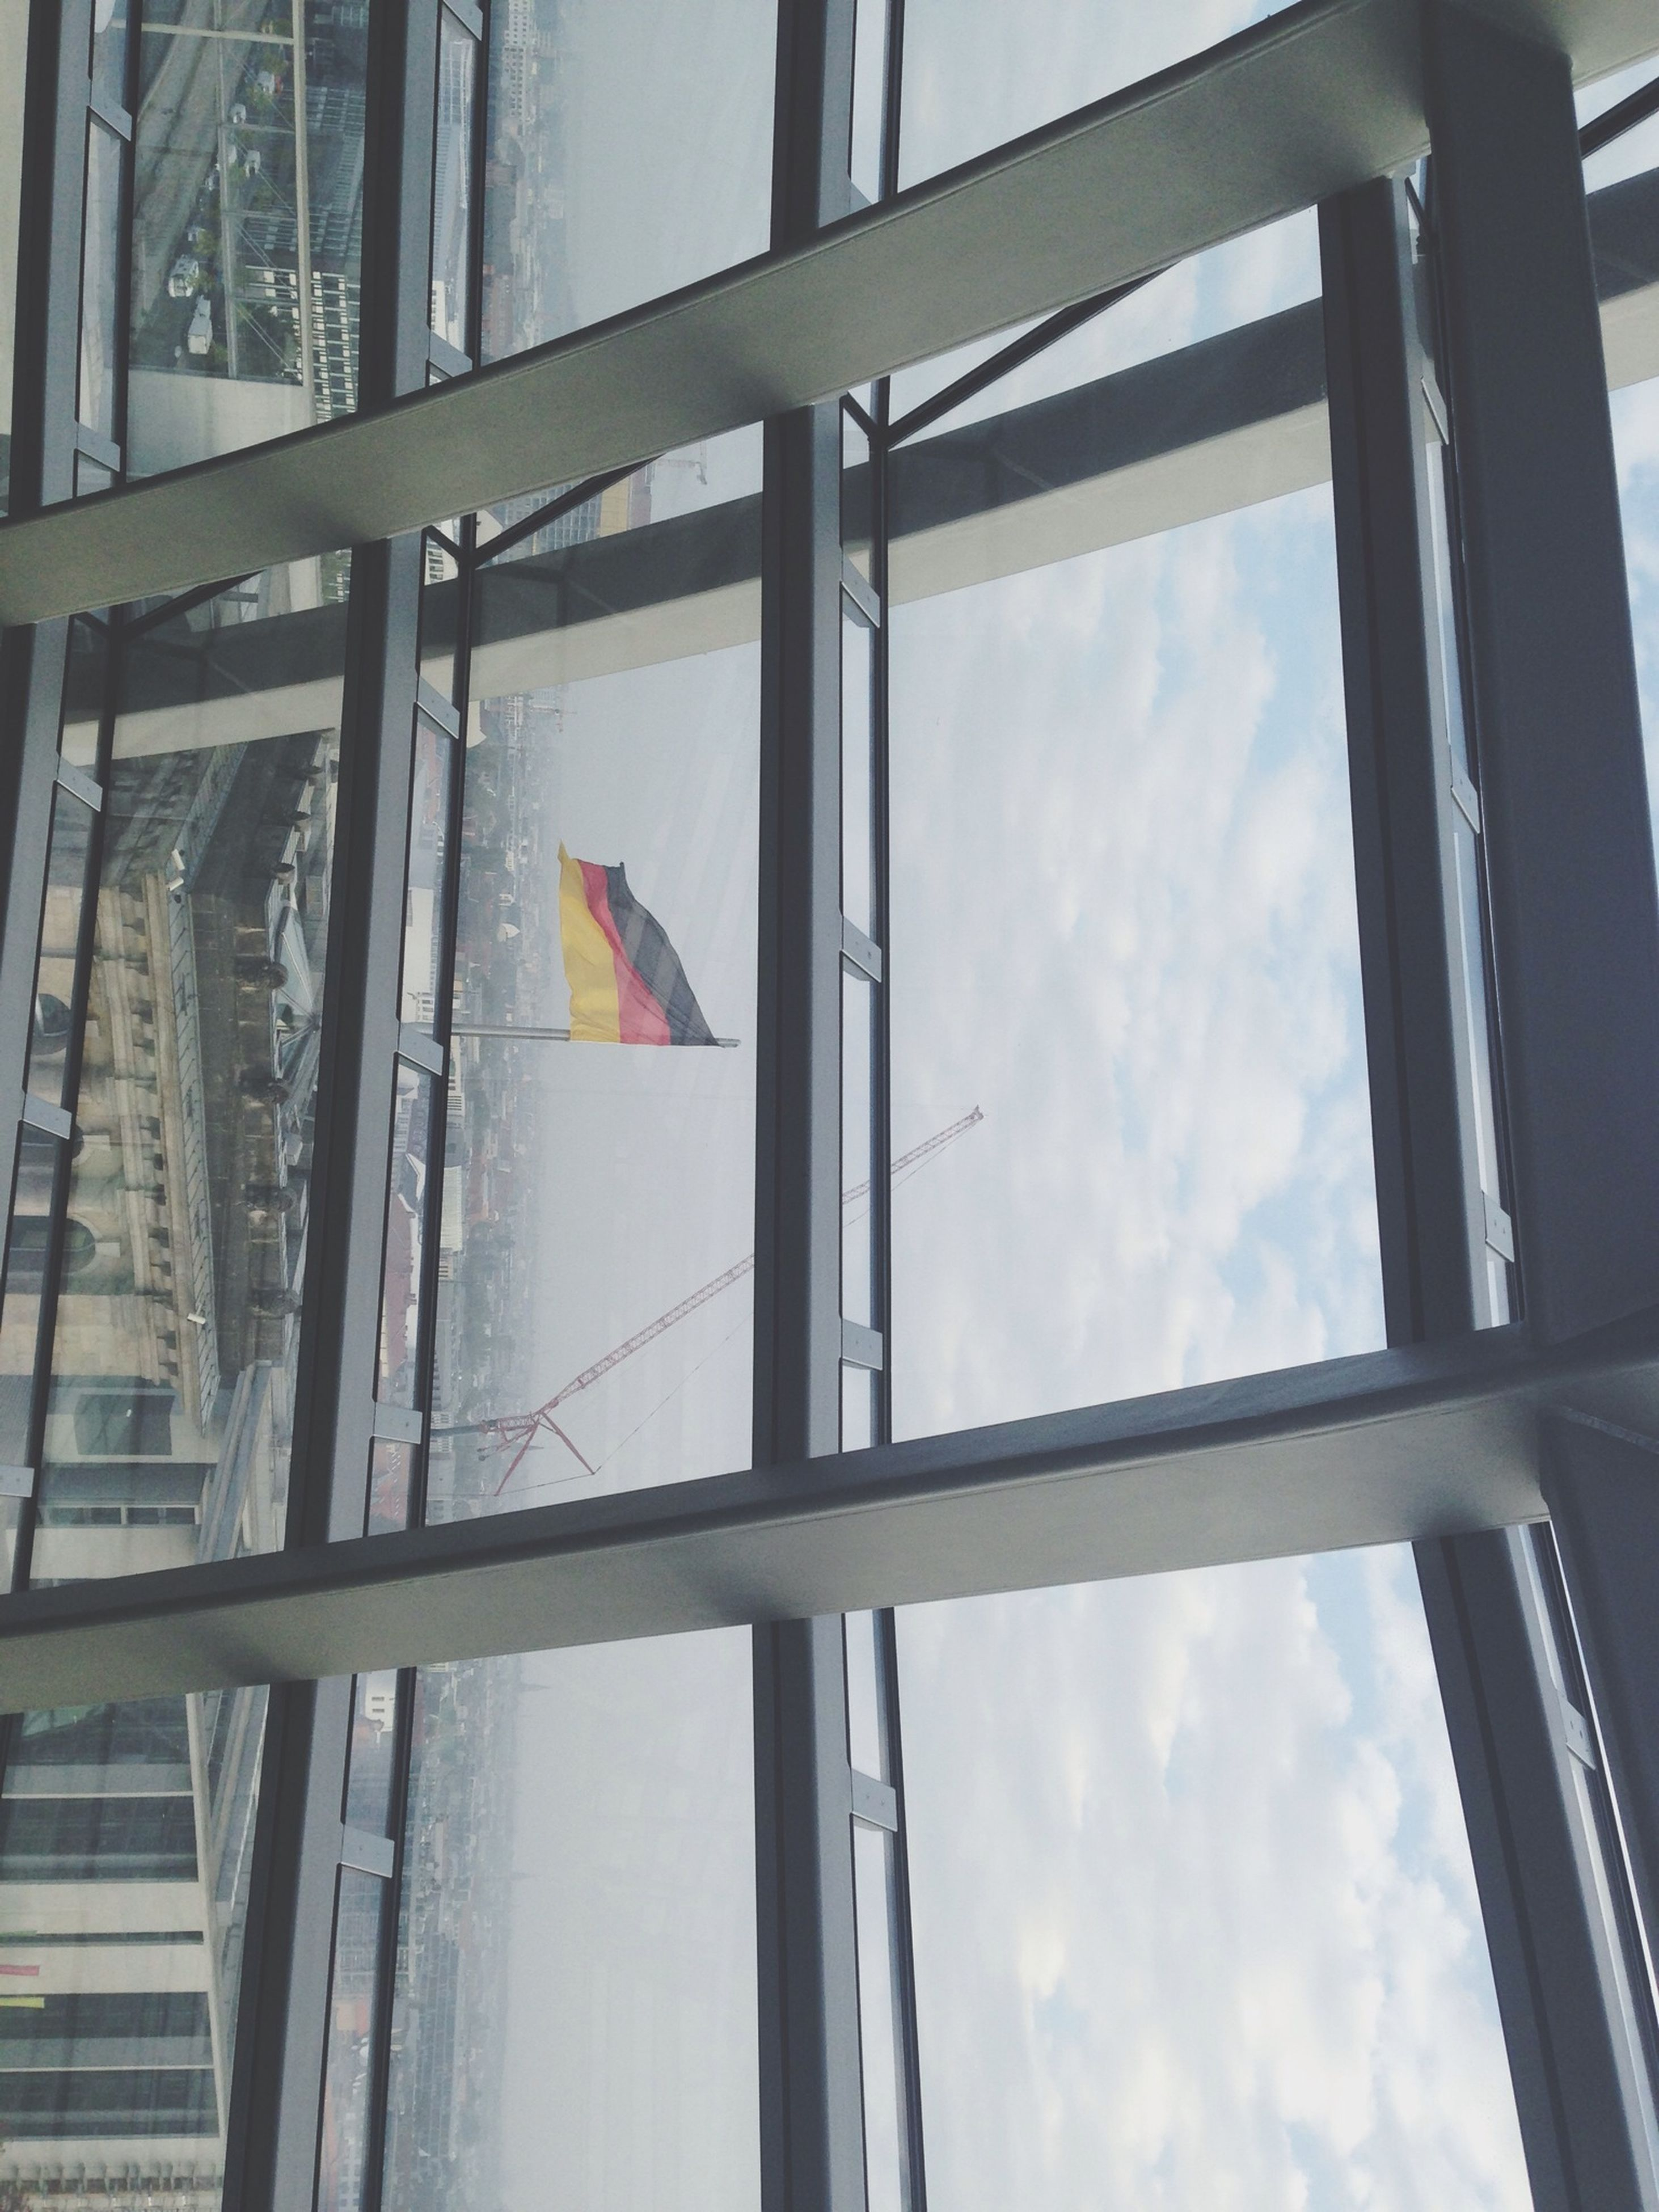 architecture, built structure, low angle view, window, glass - material, building exterior, sky, cloud - sky, transparent, building, day, city, cloud, indoors, reflection, cloudy, no people, glass, modern